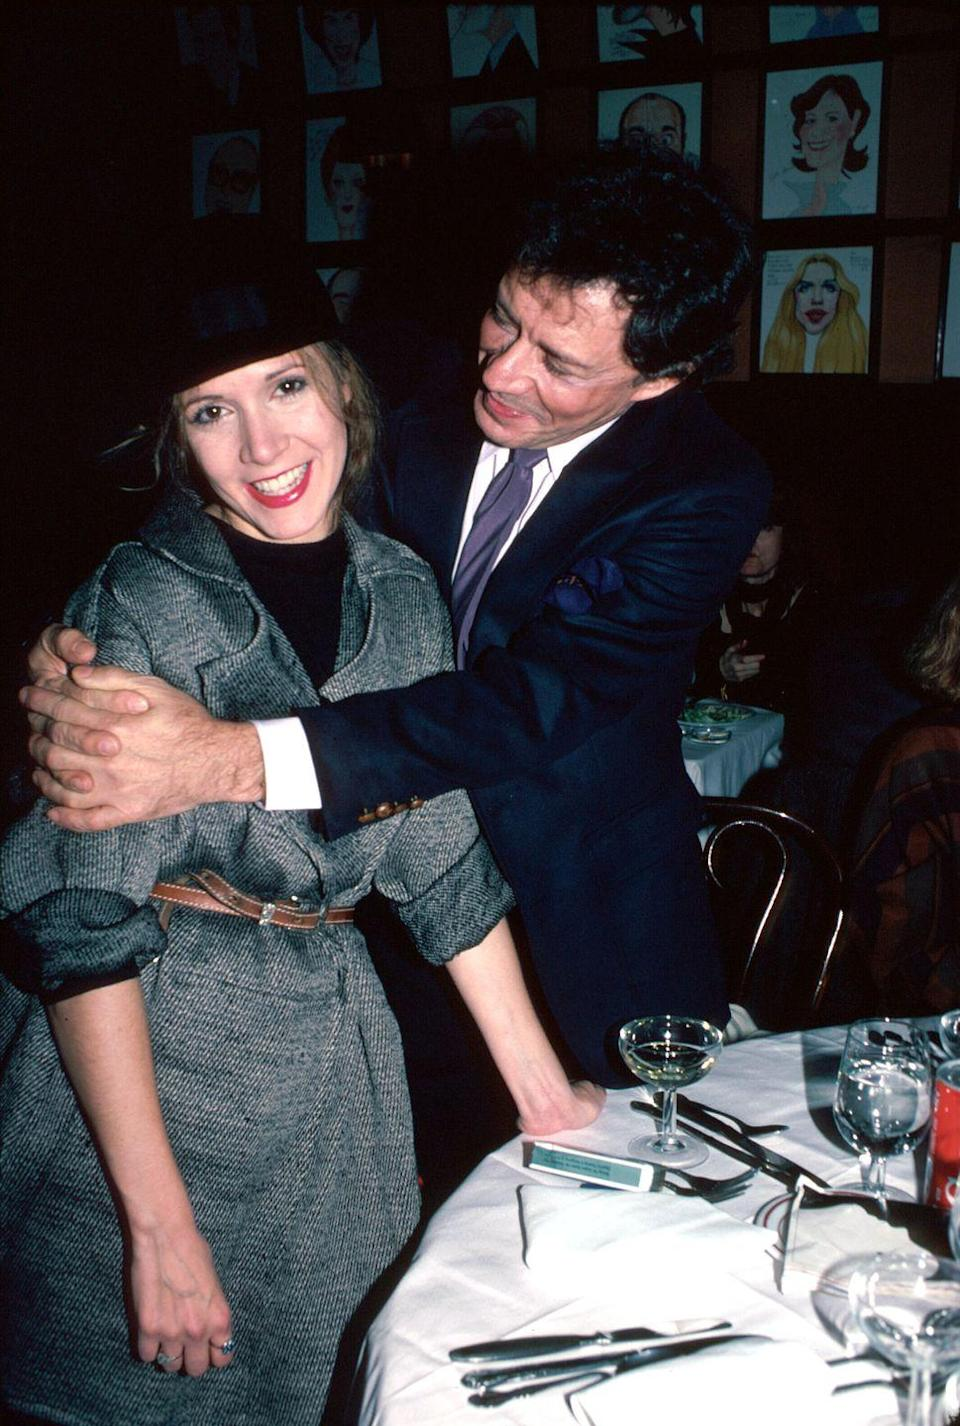 "<p>The actress returned to the stage on Broadway once again for the play <em>Agnes of God </em>in 1983. Here, she's seen with her father Eddie, whom she's been honest about having a strained relationship with. ""He defined me more by his absence than by presence,"" Fisher <a href=""https://www.nytimes.com/2010/12/05/arts/television/05fisher.html"" rel=""nofollow noopener"" target=""_blank"" data-ylk=""slk:told The New York Times"" class=""link rapid-noclick-resp"">told <em>The New York Times</em></a><em>. </em></p>"